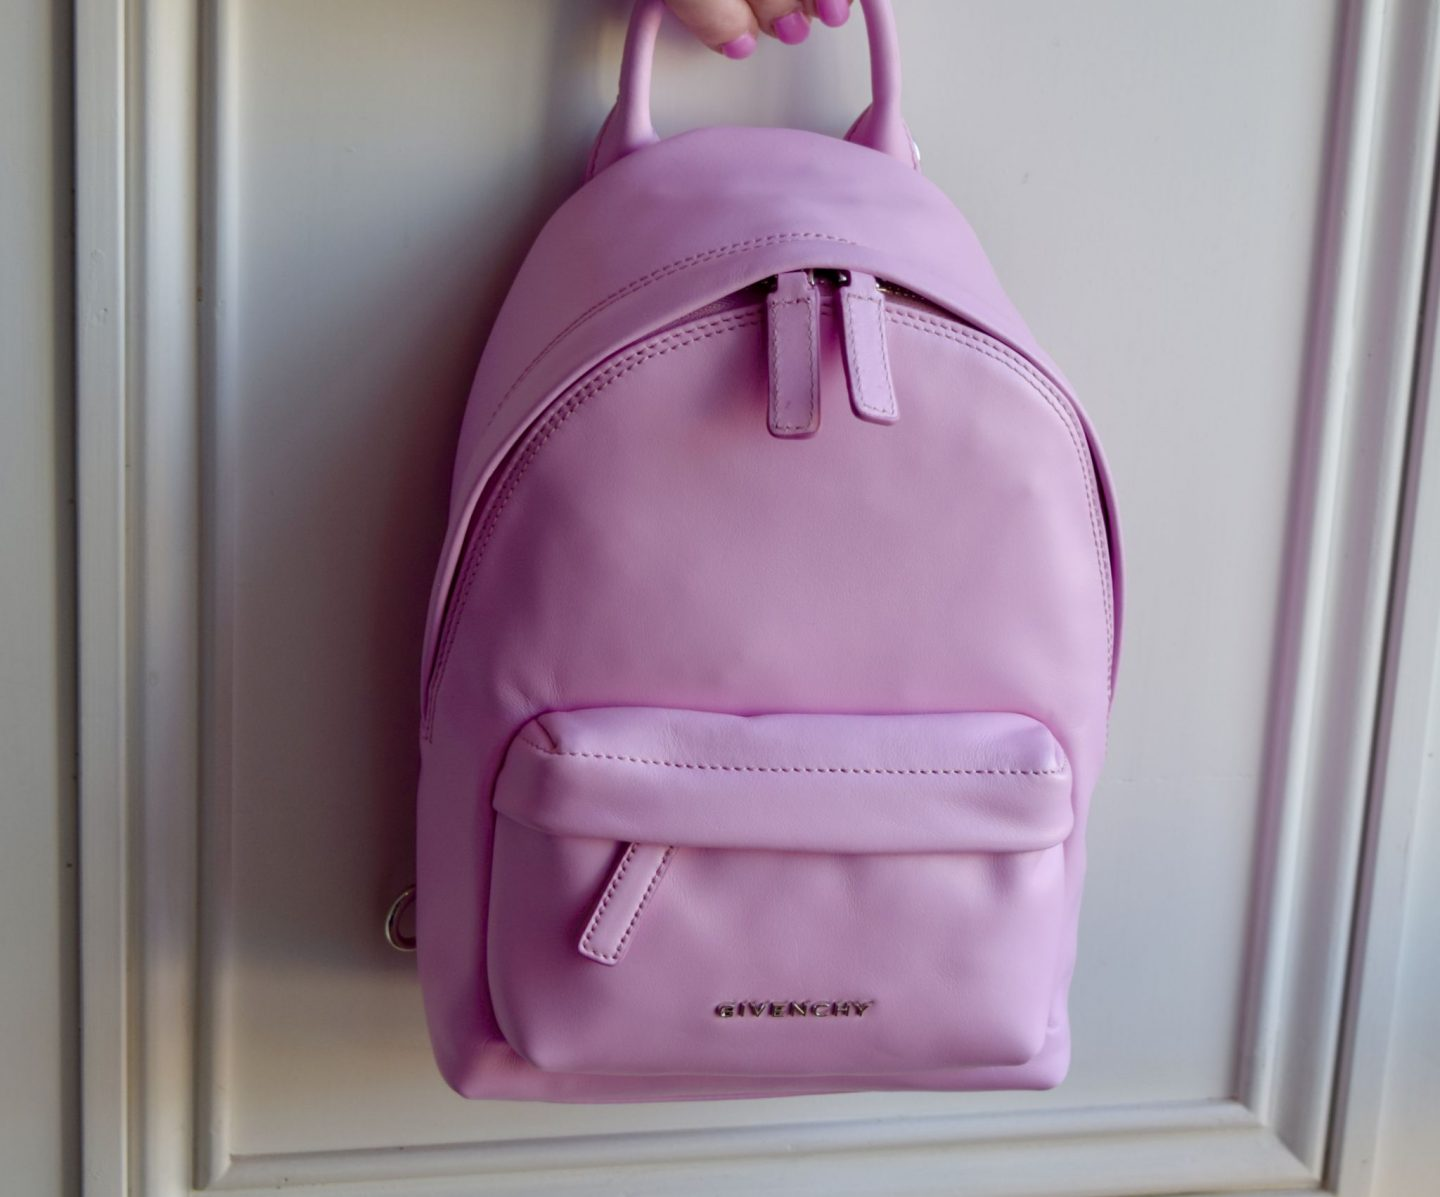 fb519486da7 Givenchy Nano Pink Leather Backpack from Harvey Nichols  - The Luxe List